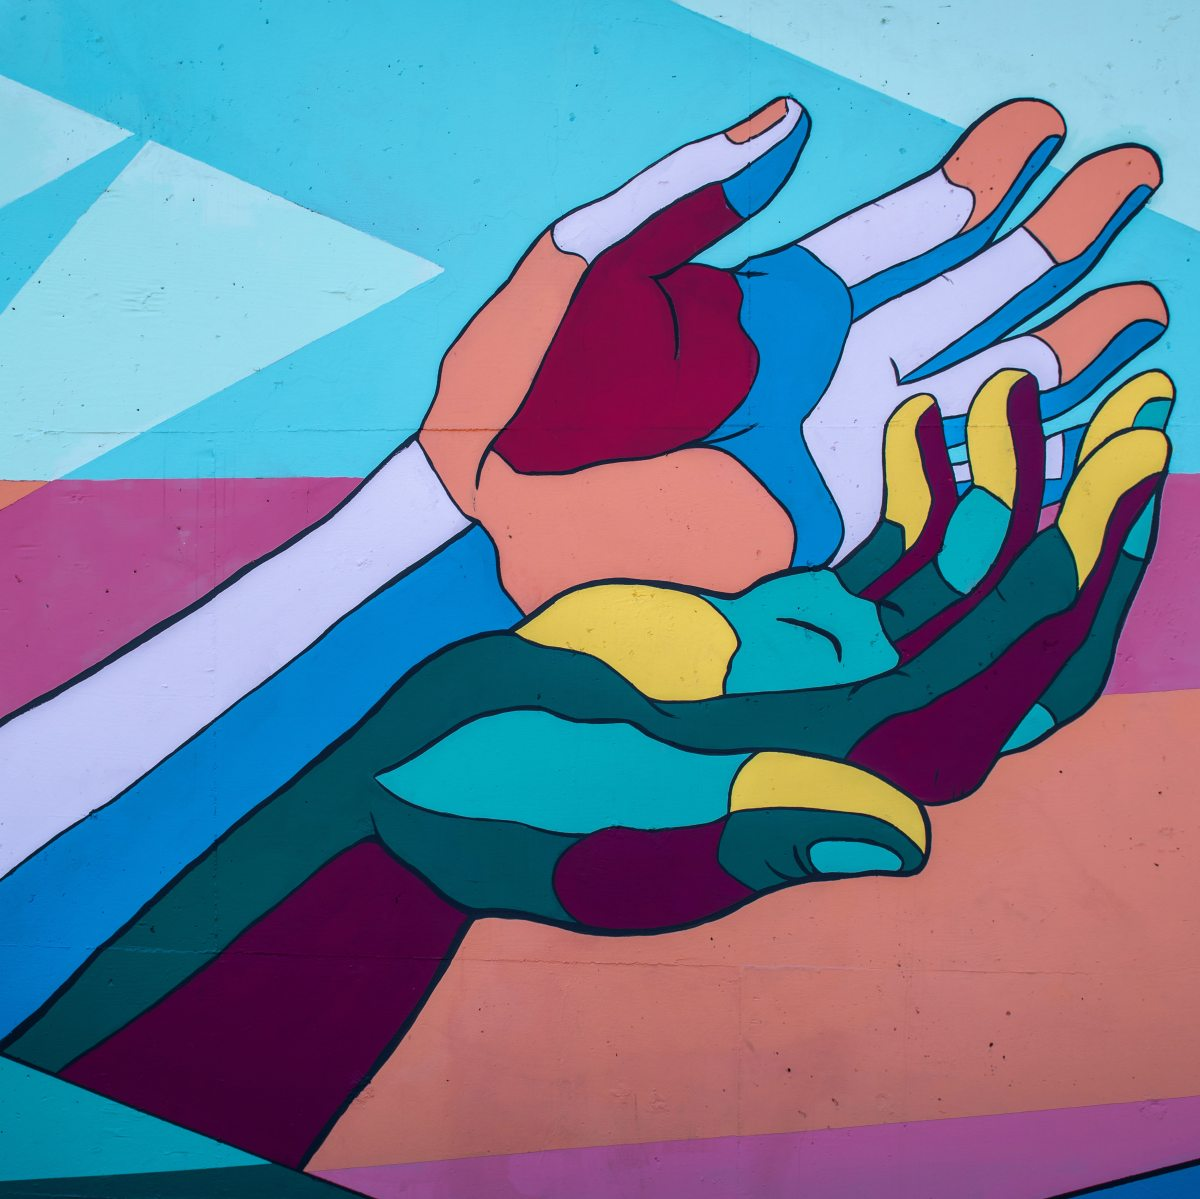 Colorful Hands mental health